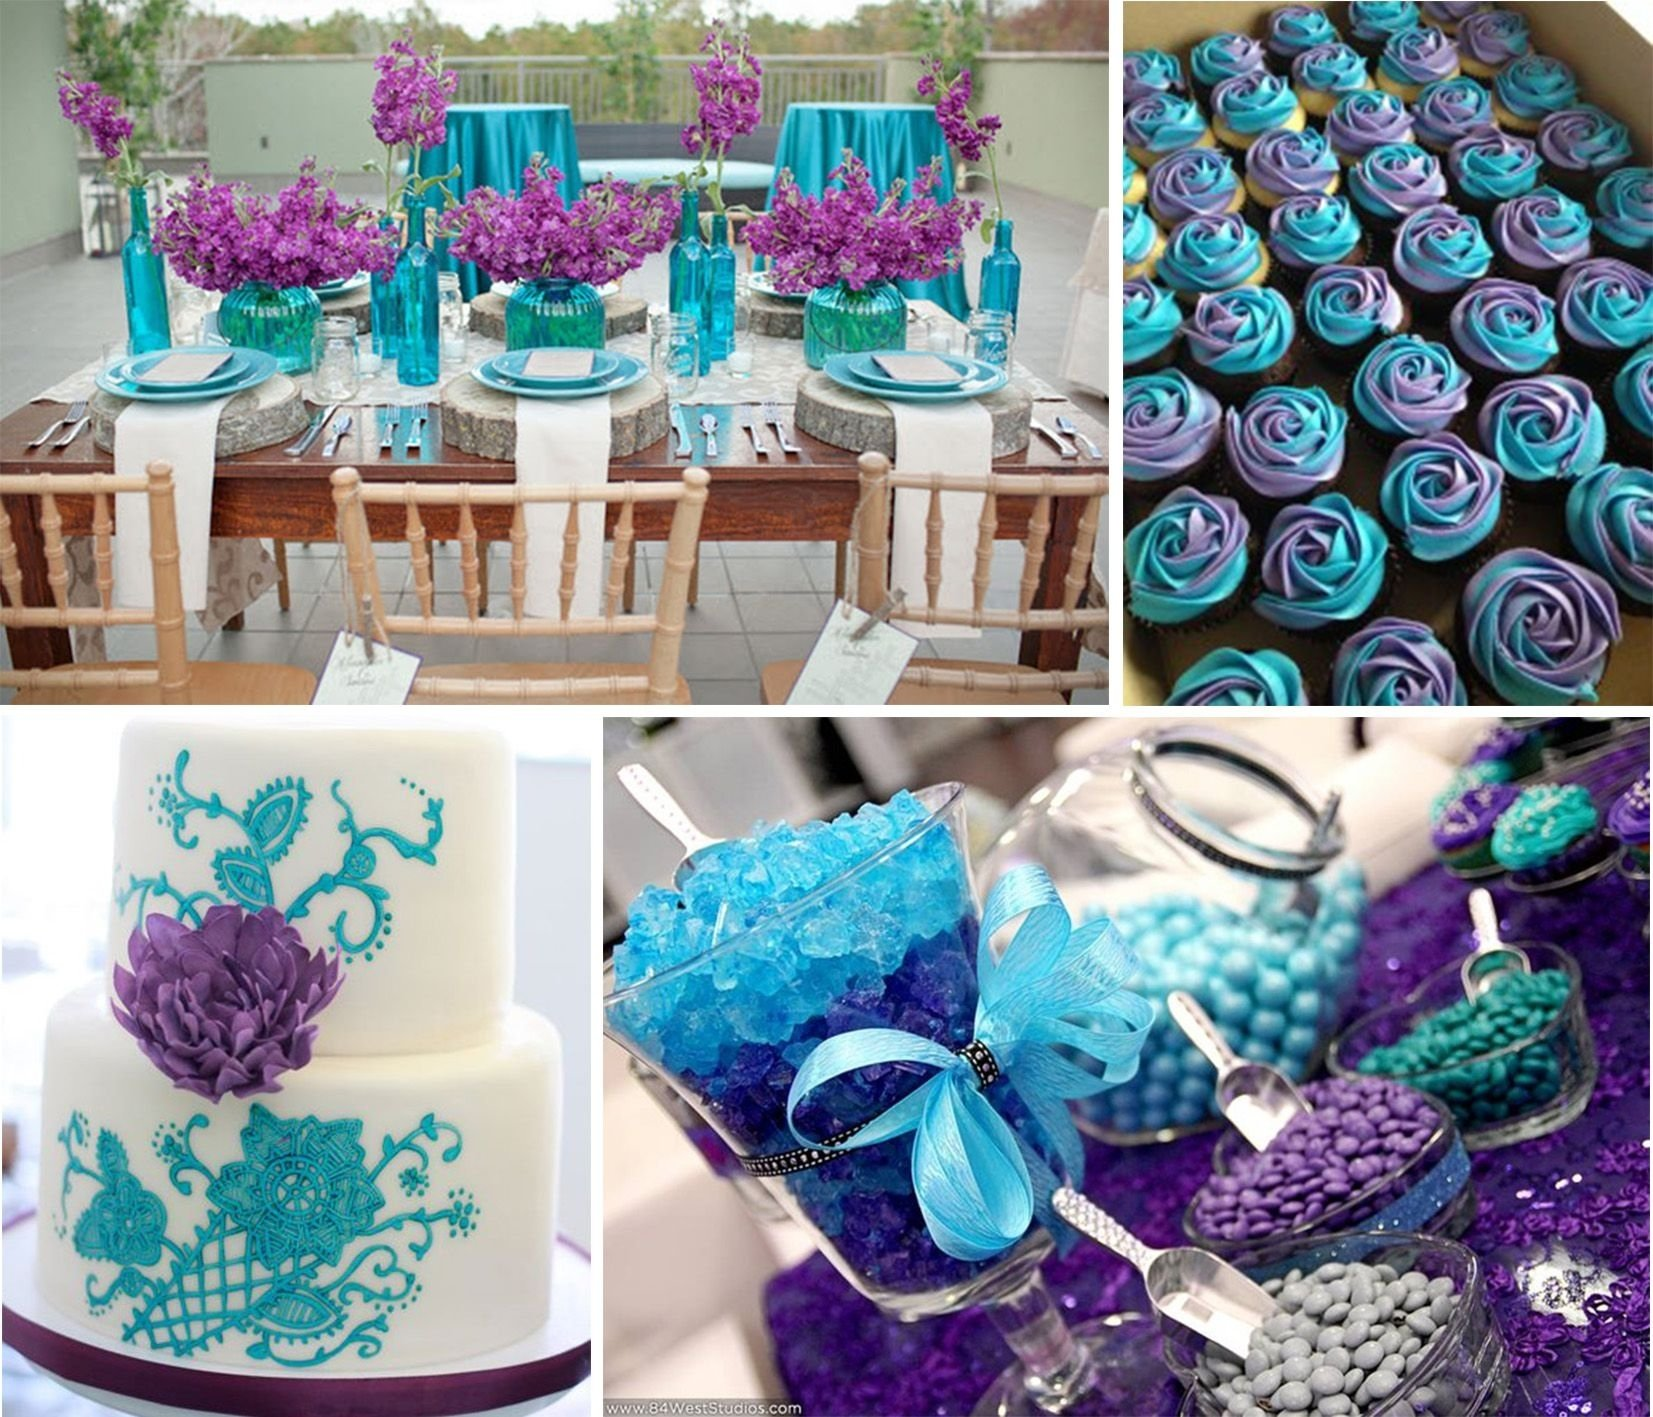 10 Best Turquoise And Purple Wedding Ideas best ideas for purple and teal wedding teal weddings teal and 1 2020